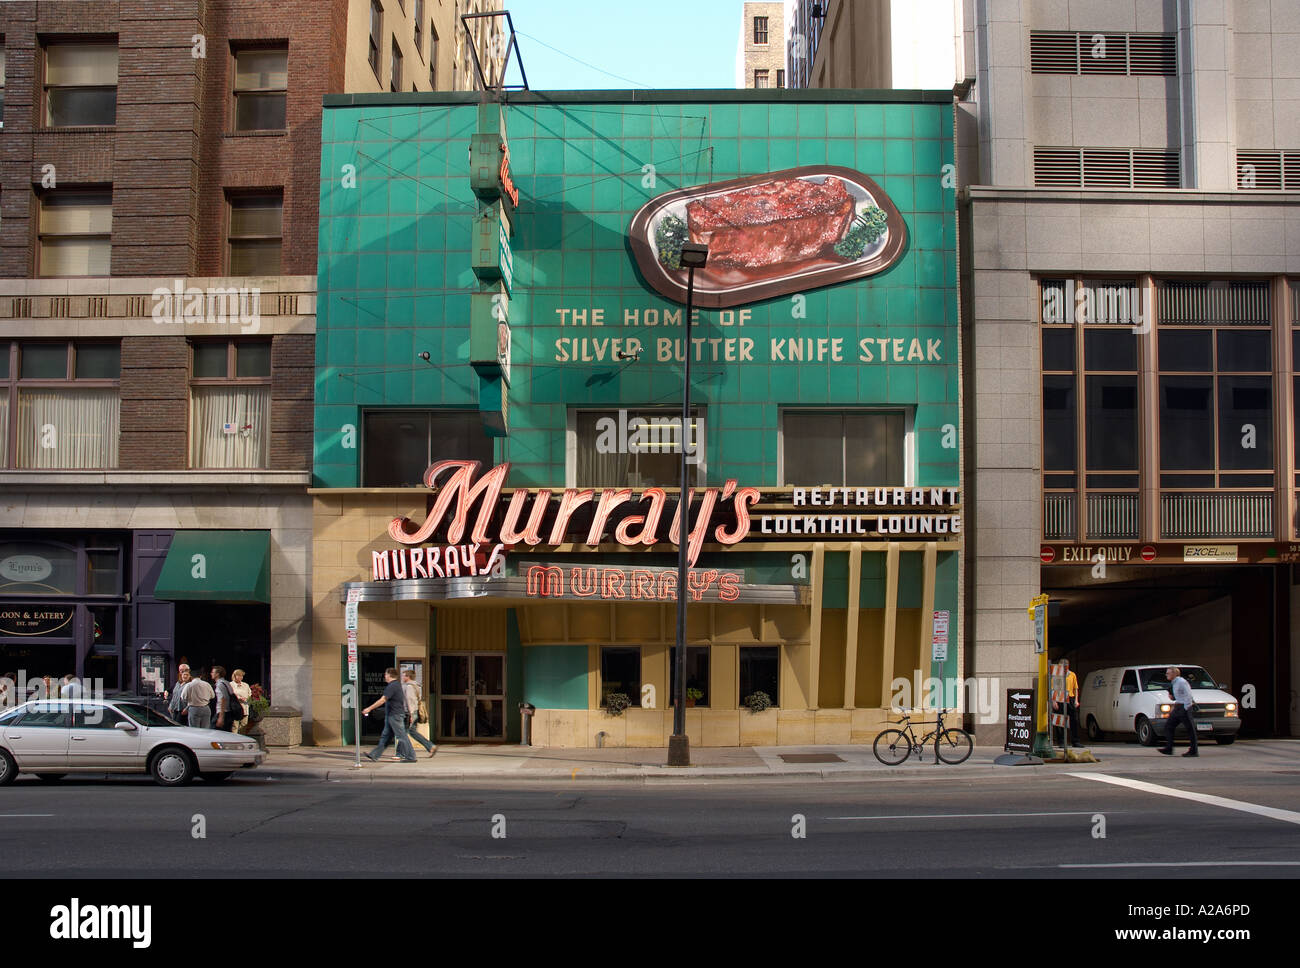 murrary's steak house minneapolis town centre - Stock Image